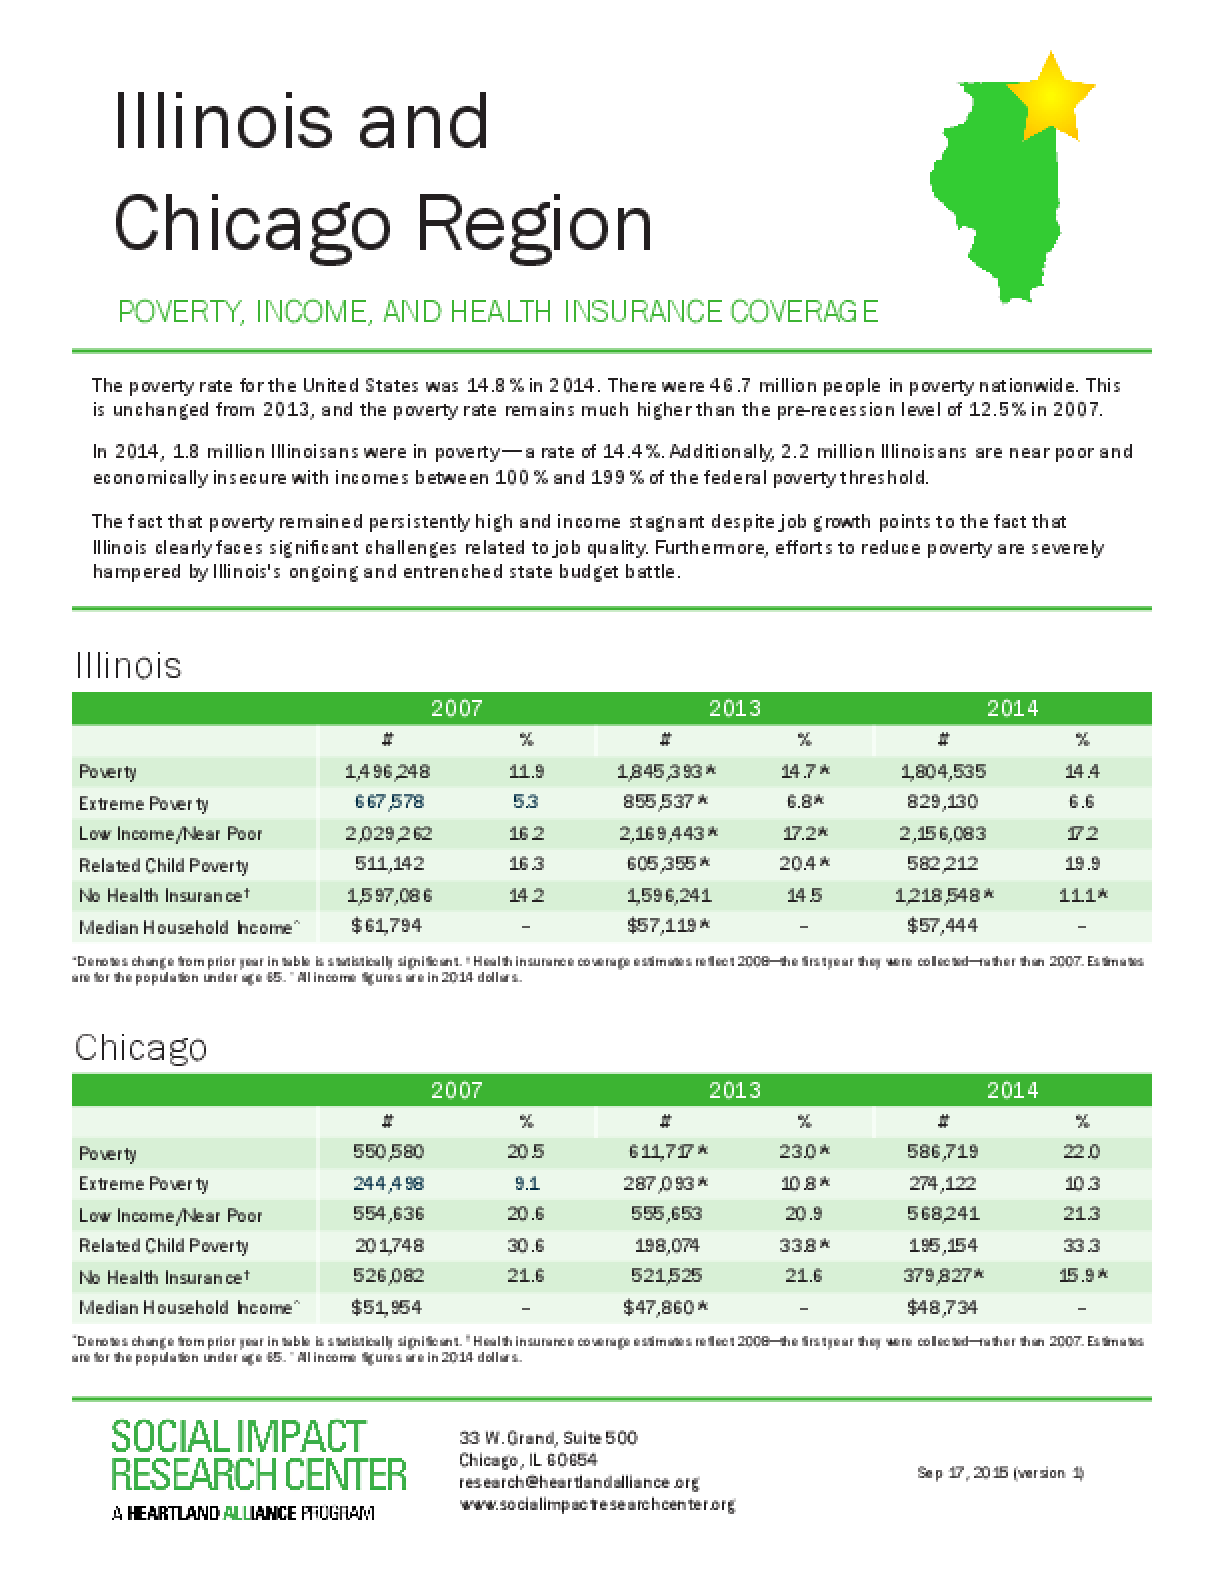 Fact Sheet: Poverty in Illinois and Chicago in 2014